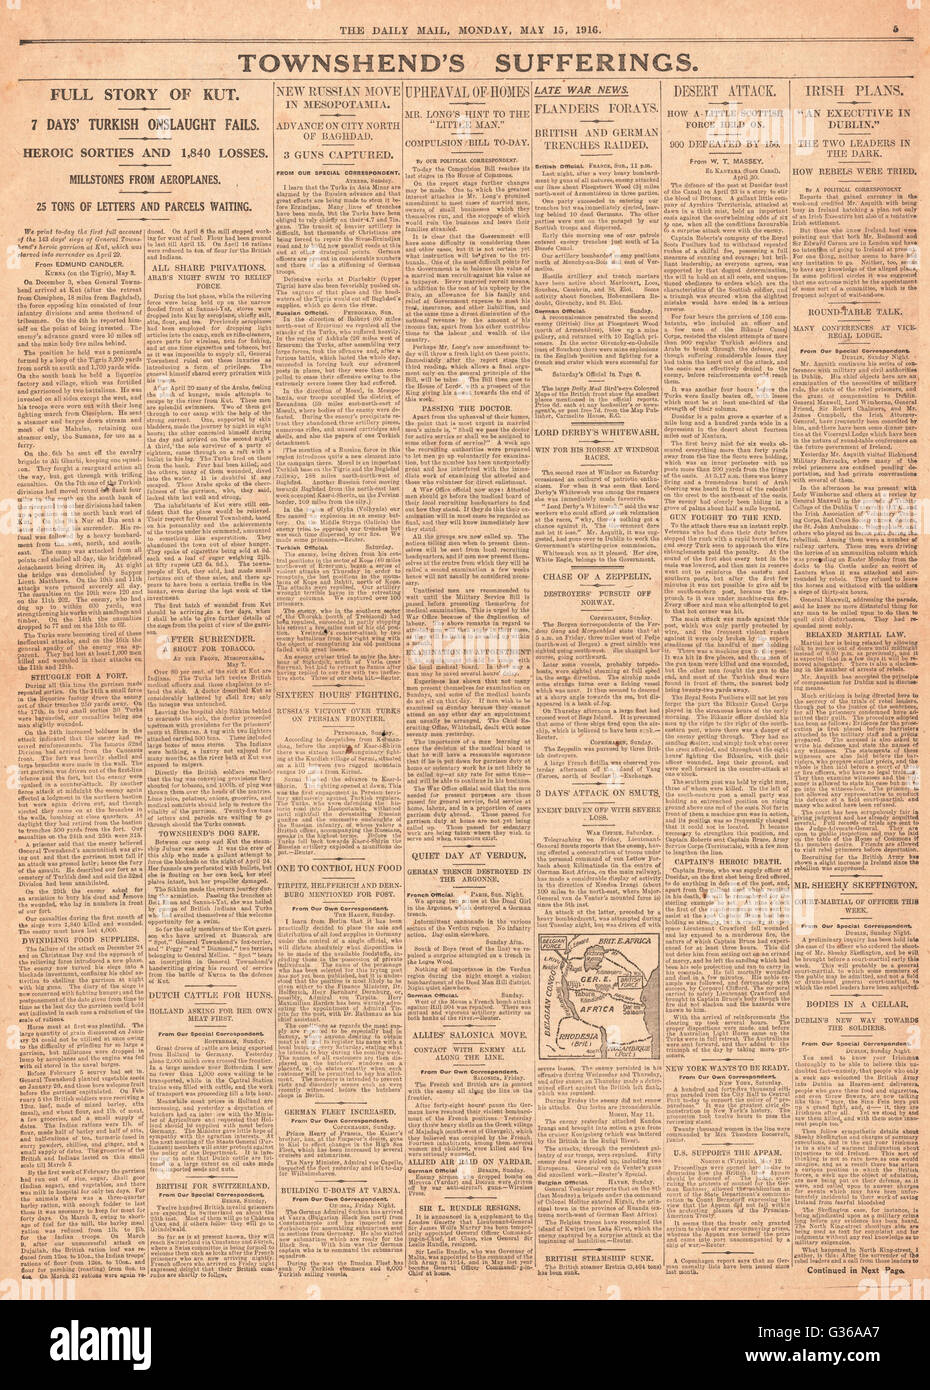 1916 Daily Mail page 5 British army defeat at Kut - Stock Image